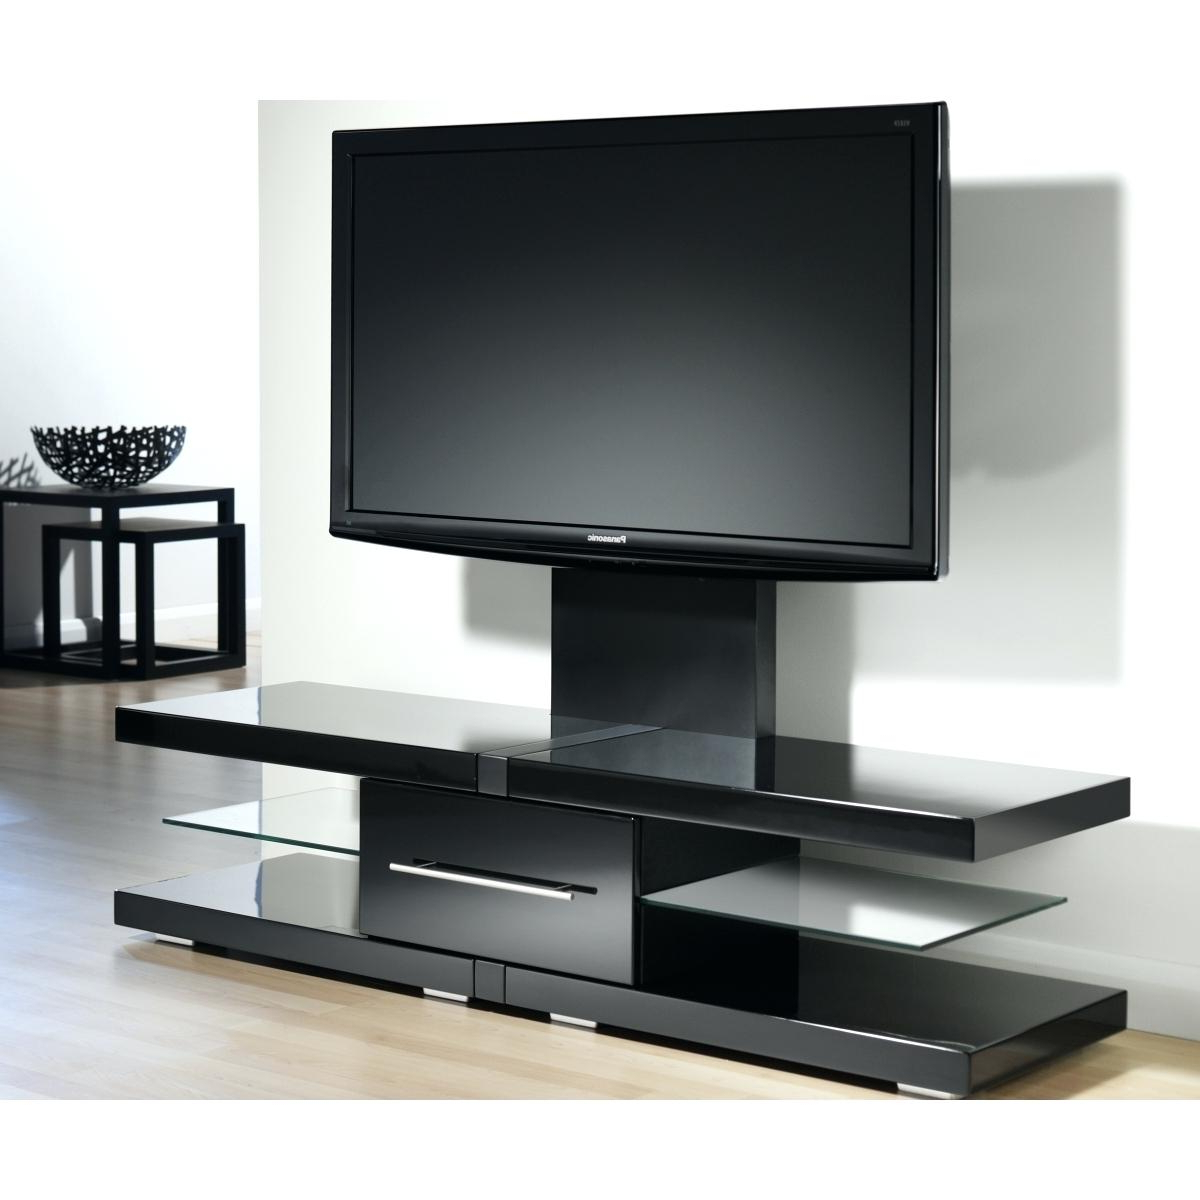 Tv Stand With Mount Swivel Fitueyes Floor For 32 60 Inches Best In Vista 60 Inch Tv Stands (View 16 of 20)